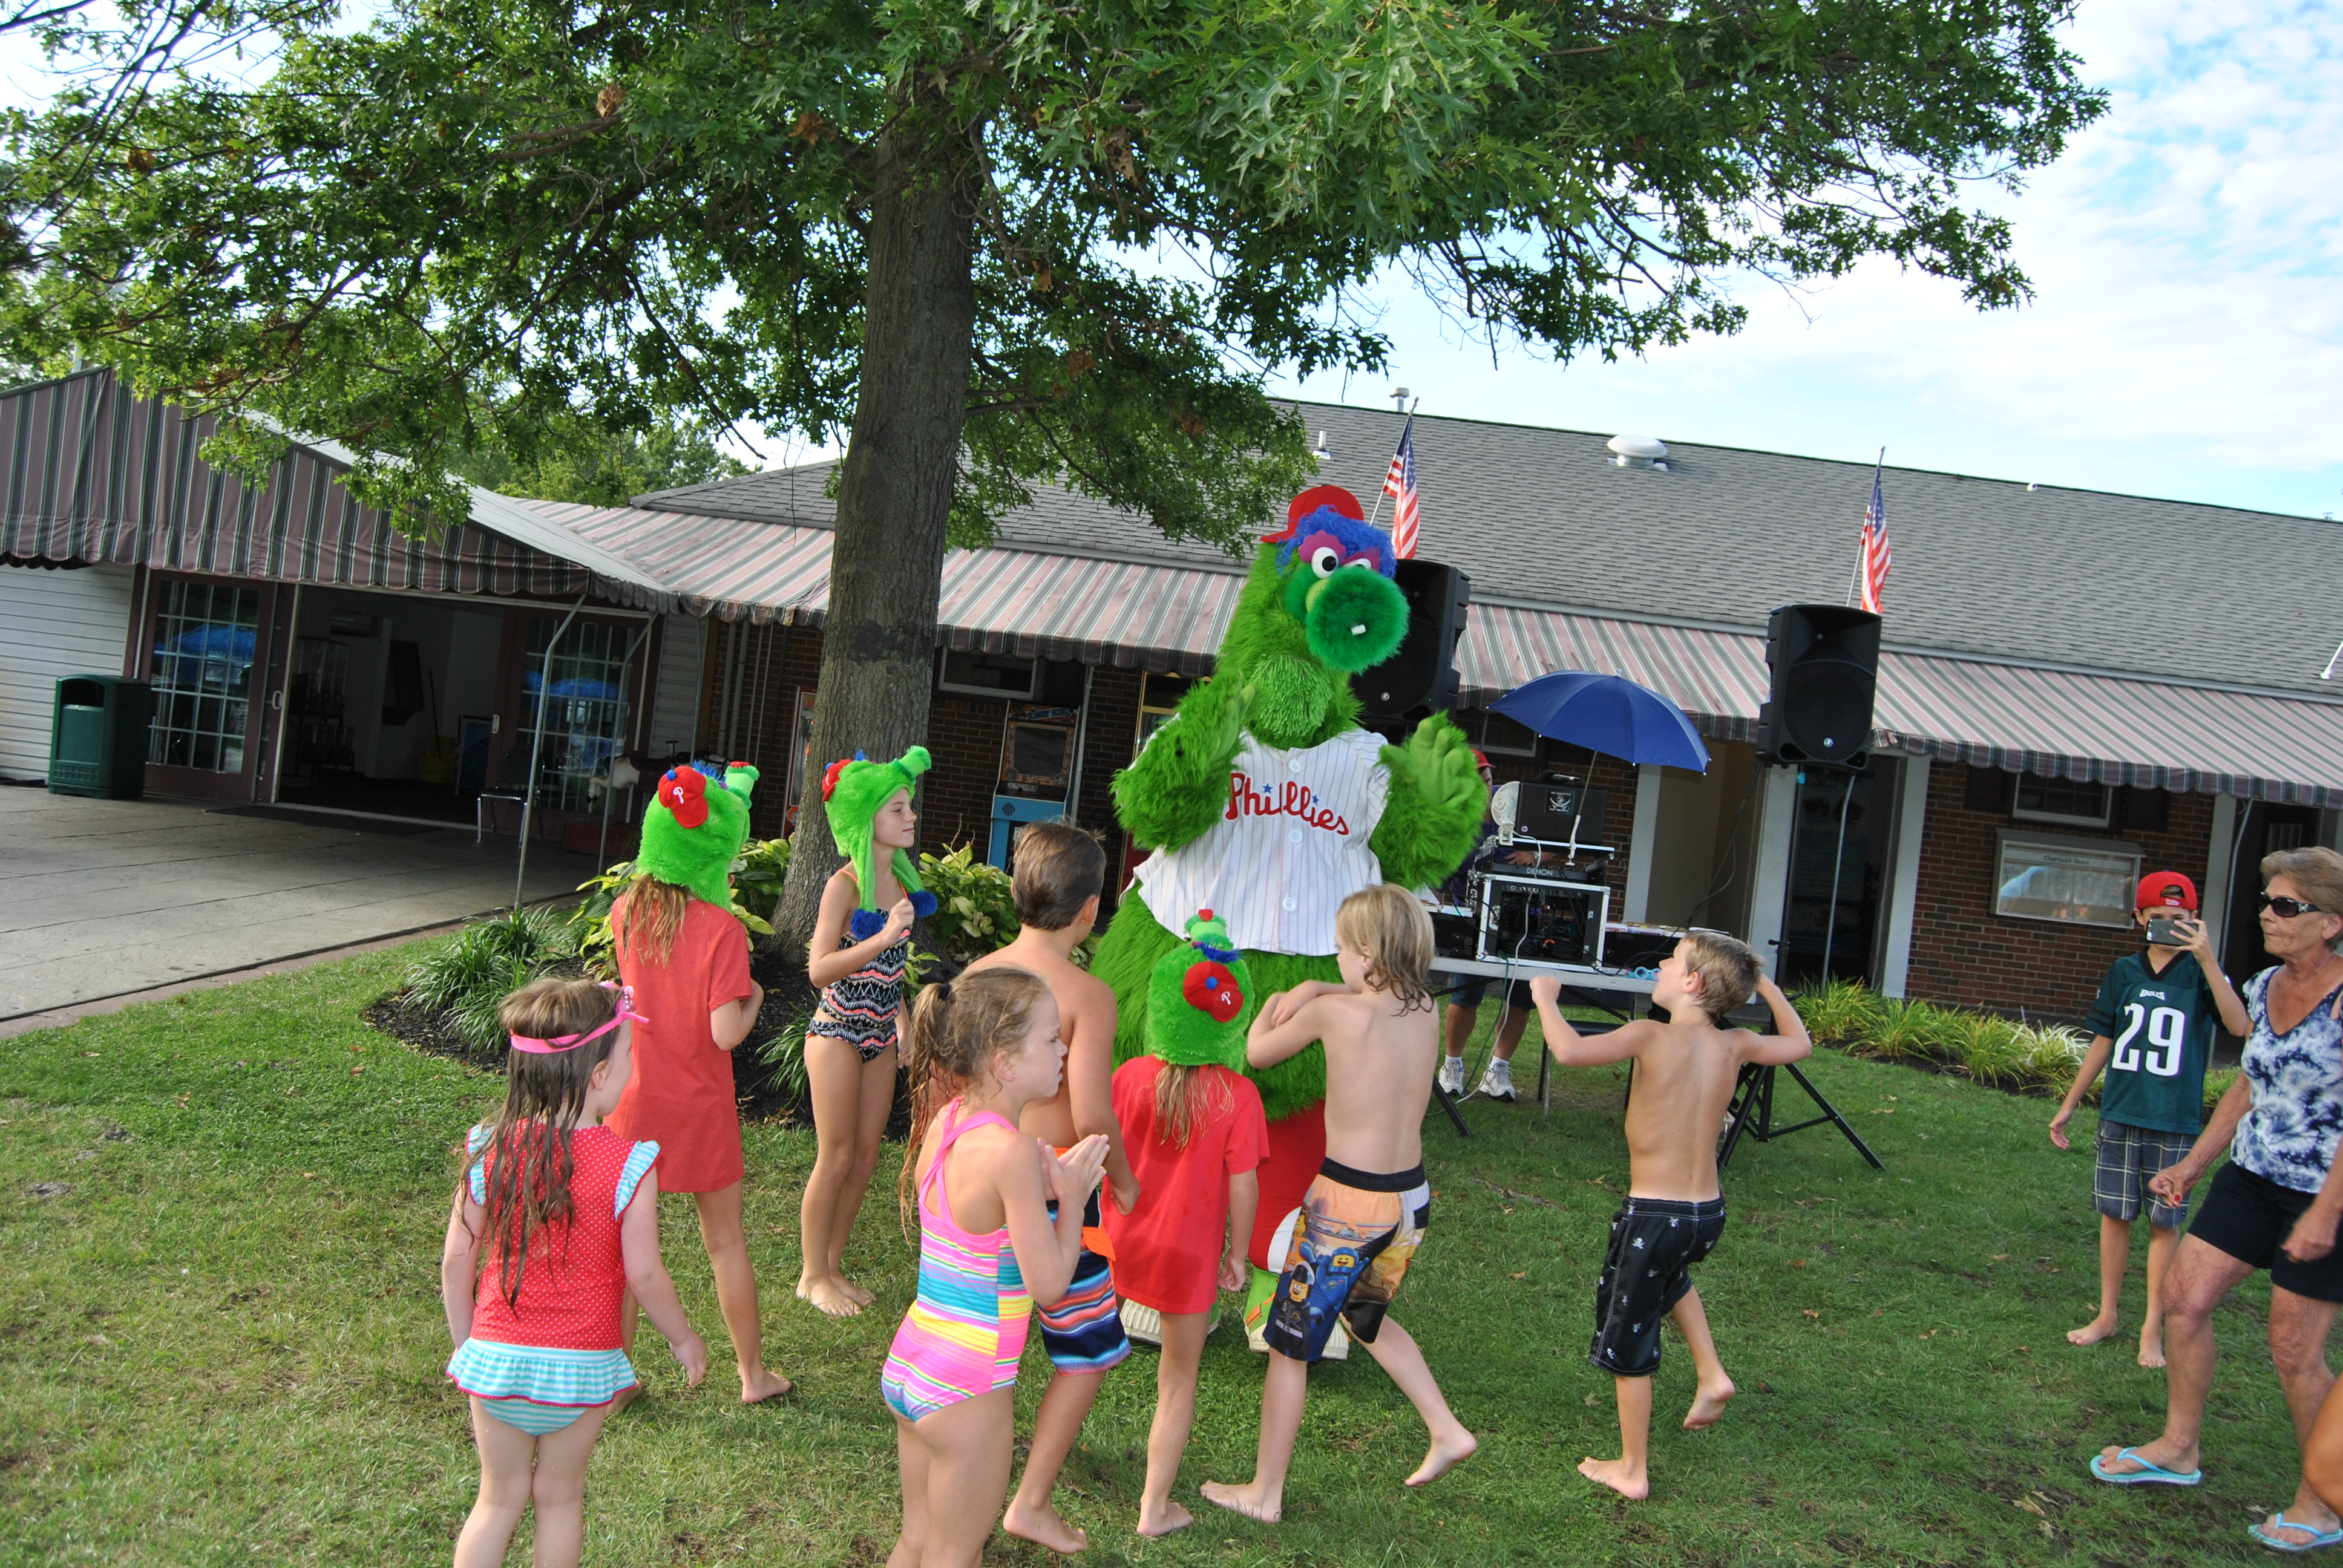 Chartwell's Happy Day Camp Marlton image 34